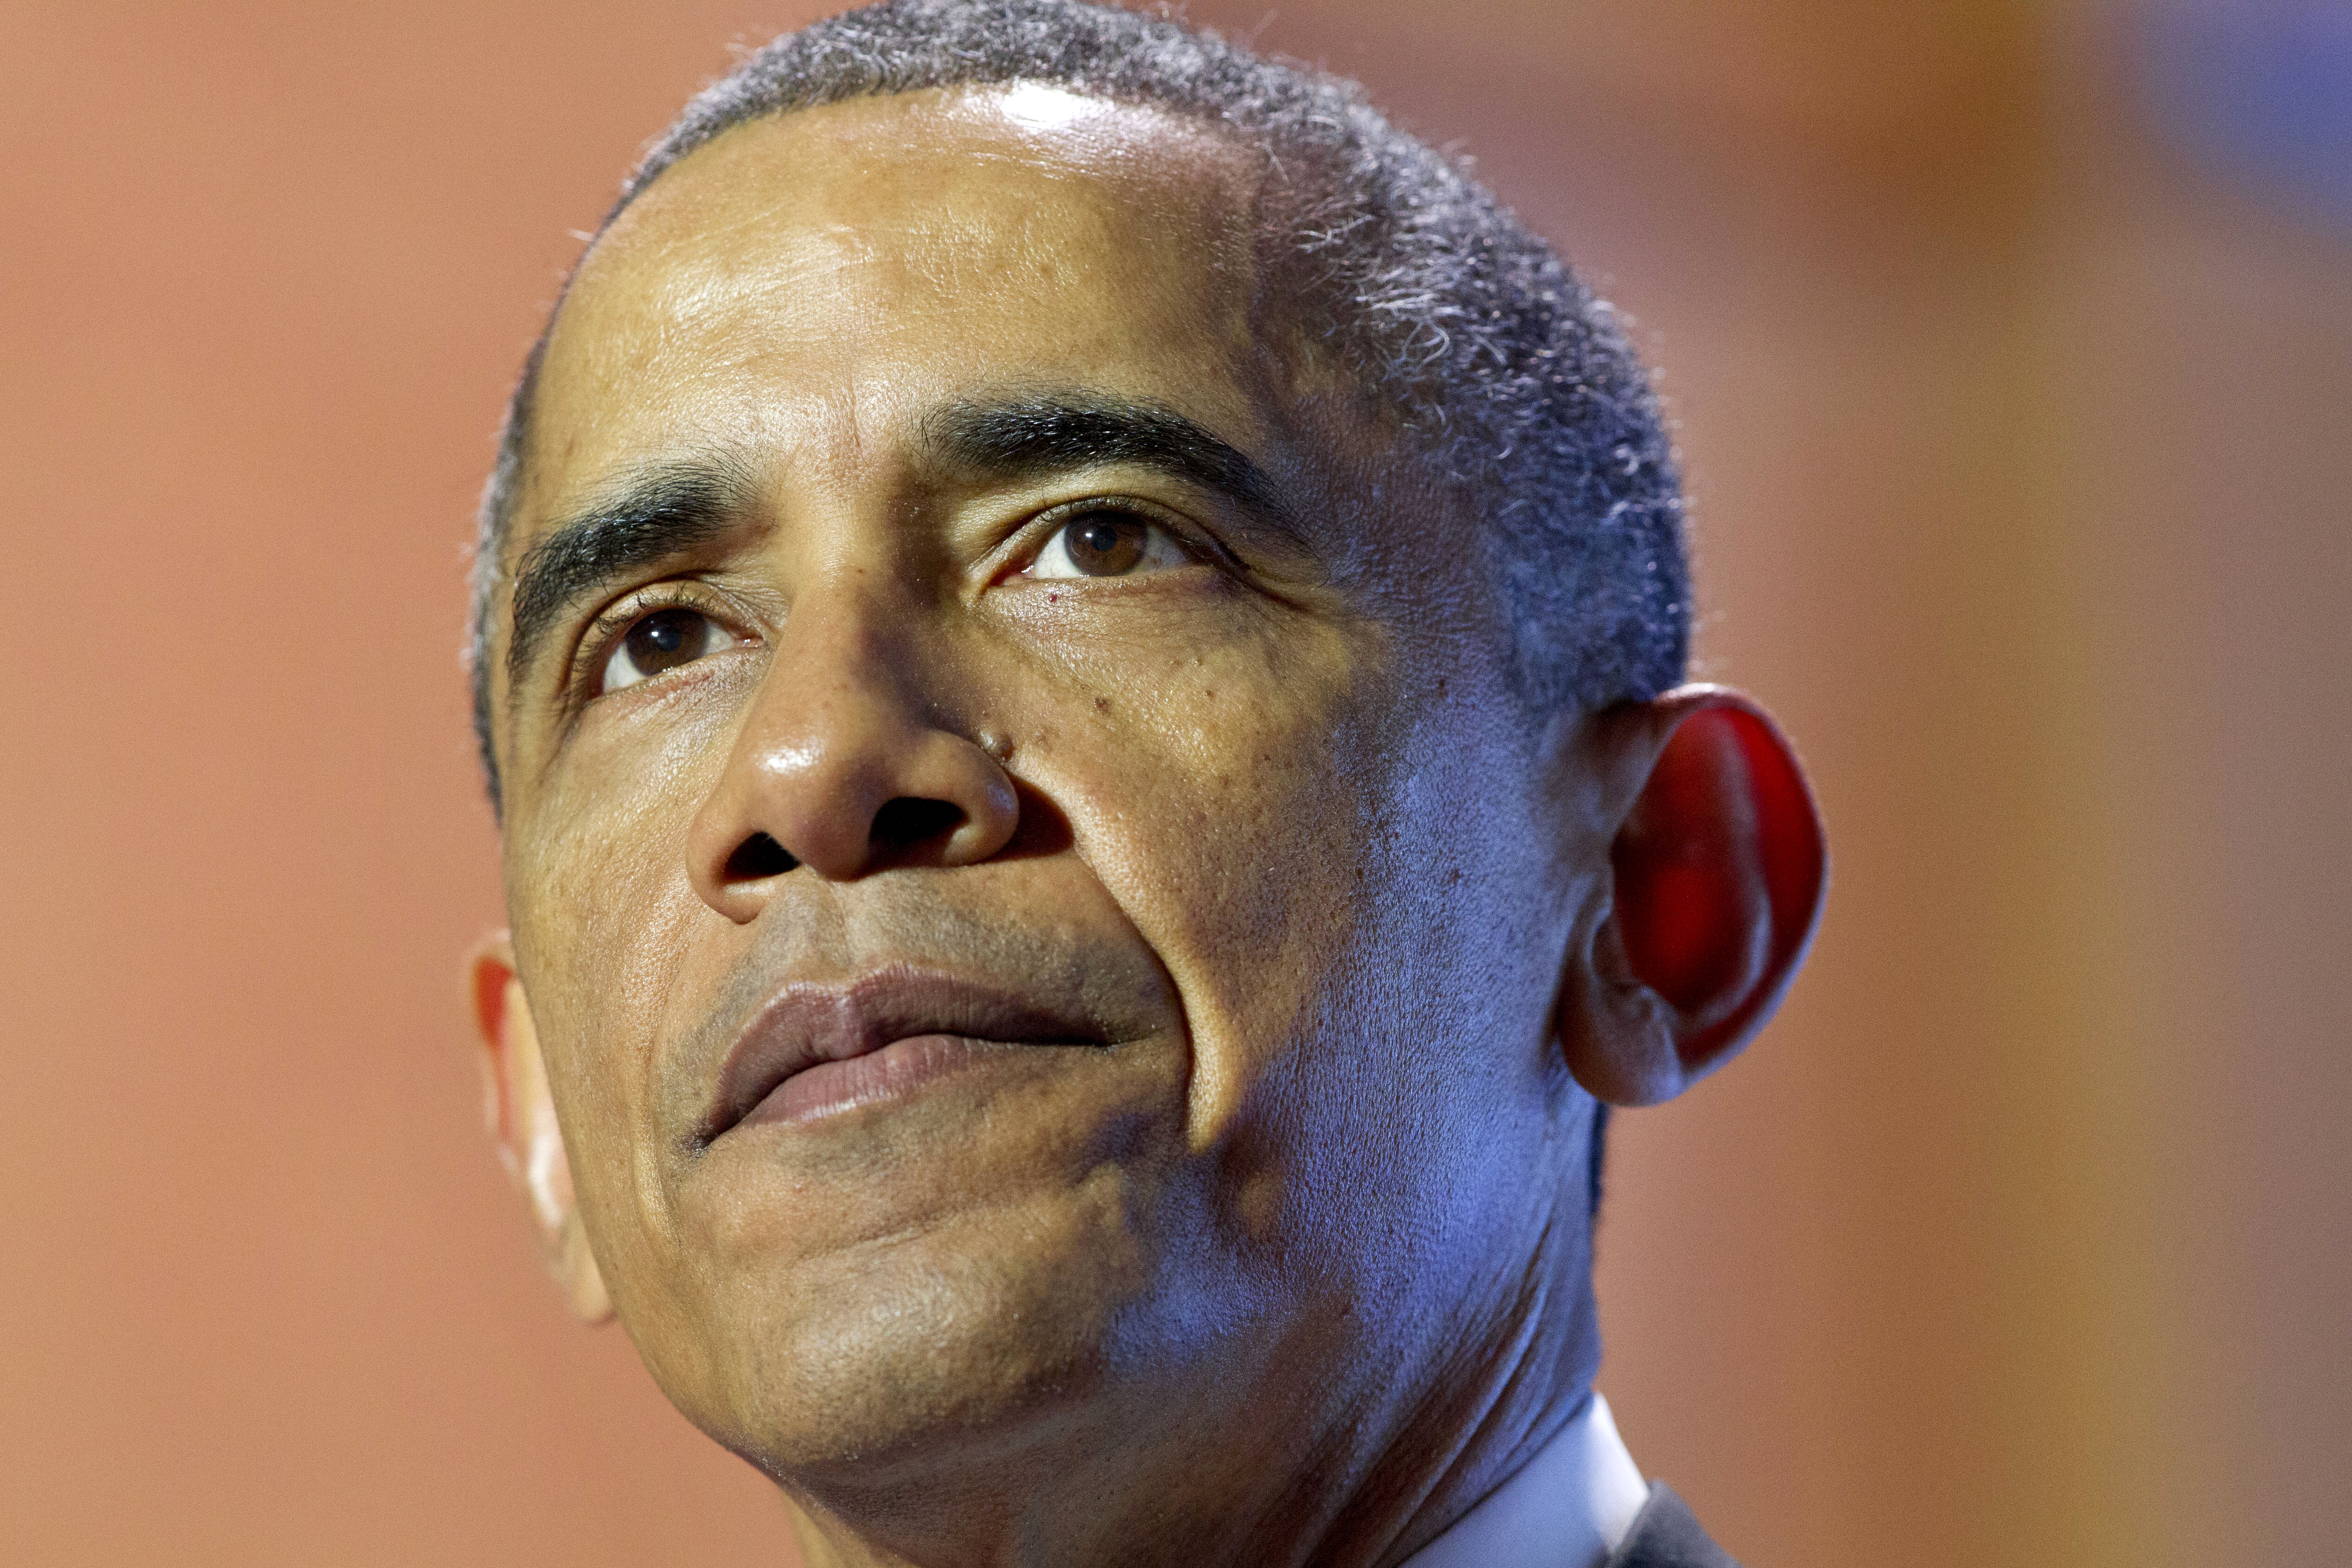 President Barack Obama pauses while speaking at the Summit on College Opportunity